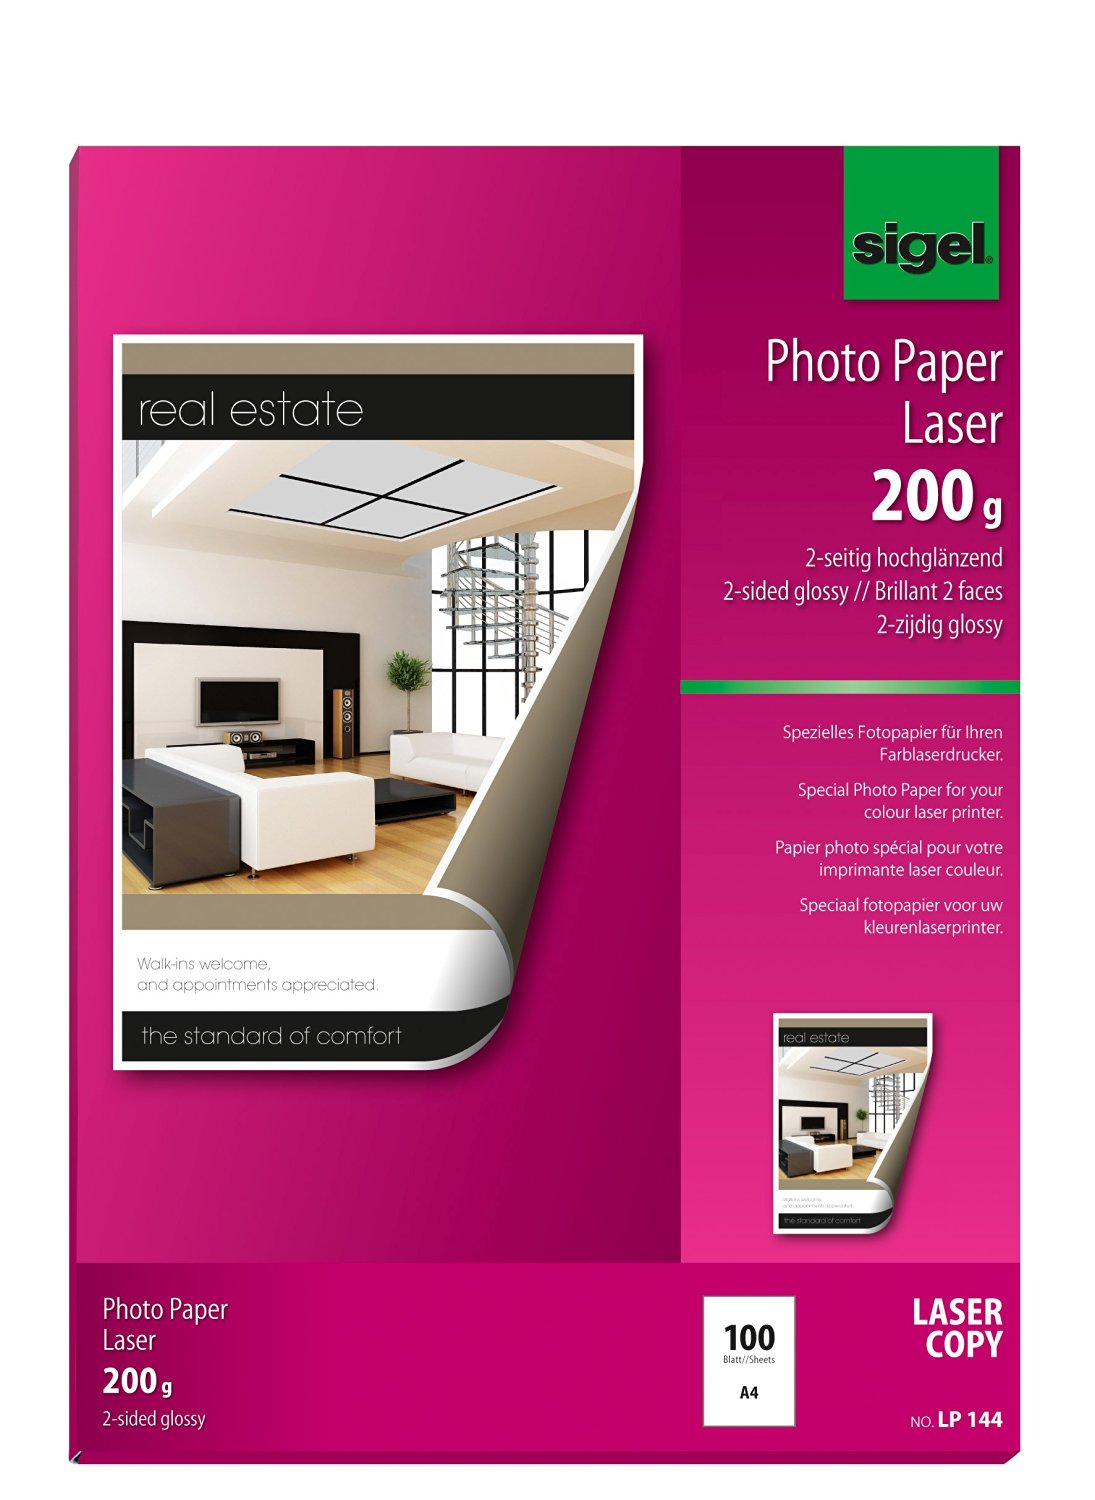 Sigel LP144 Photo Paper for Colour Laser/Copier, 2-sided glossy, 135.1 lbs, A4, 100 sheets